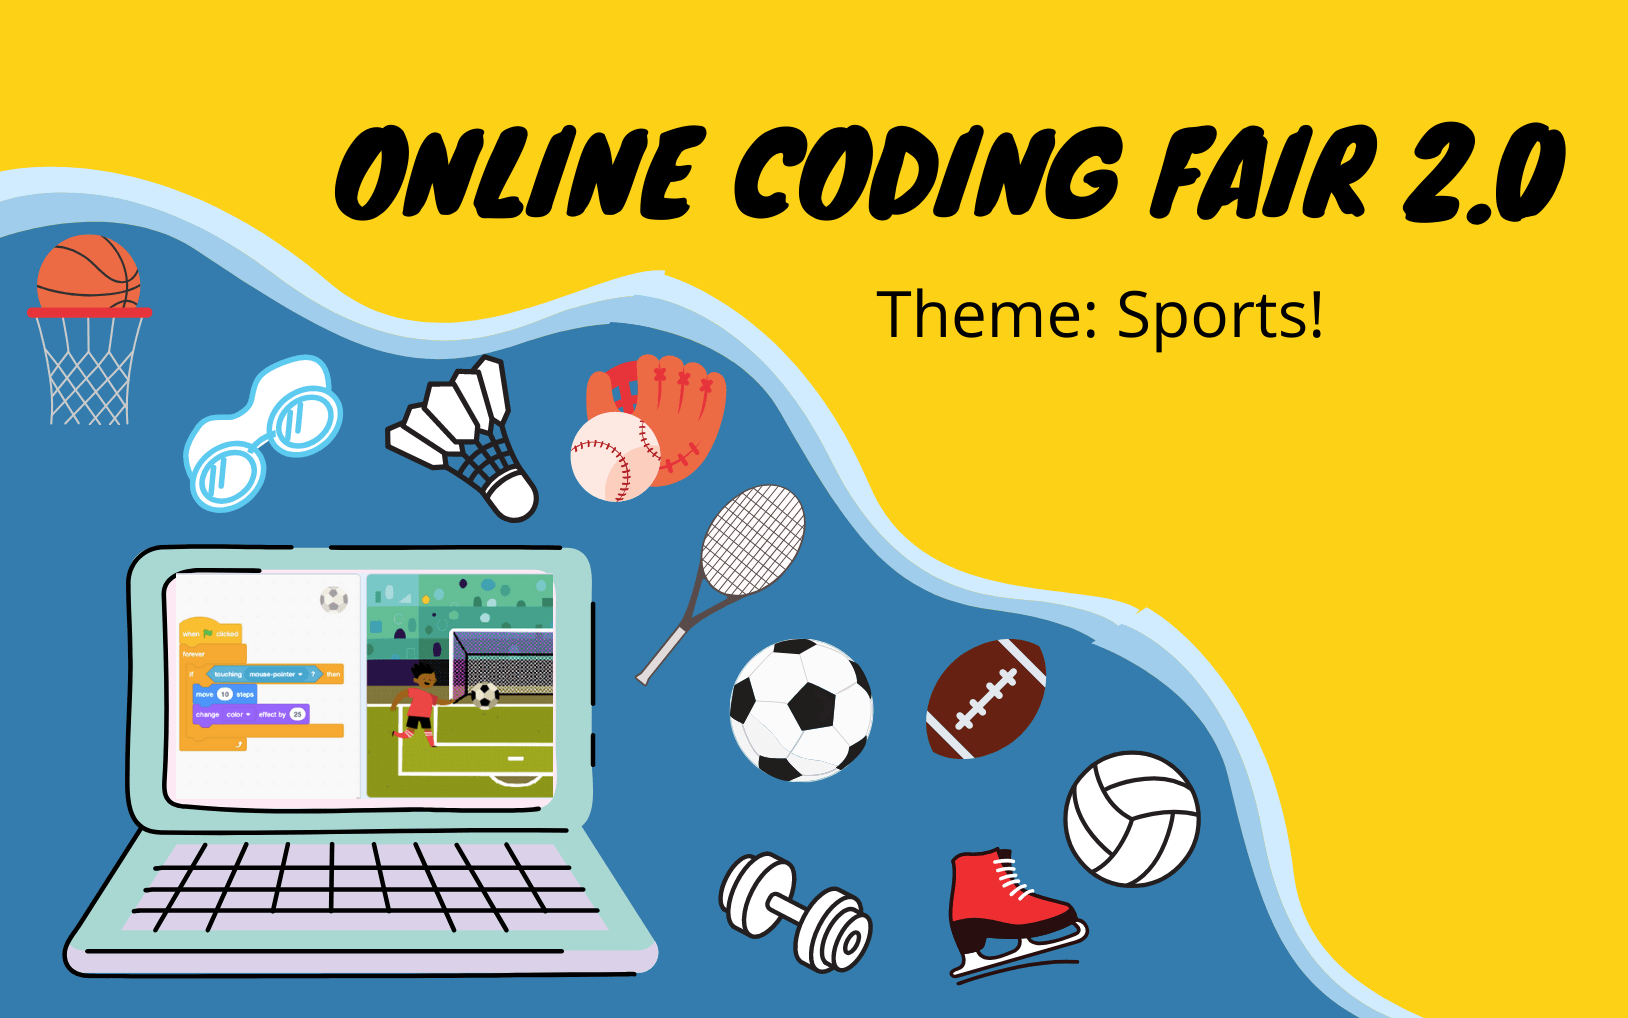 Online Coding Fair 2.0 - Sports!